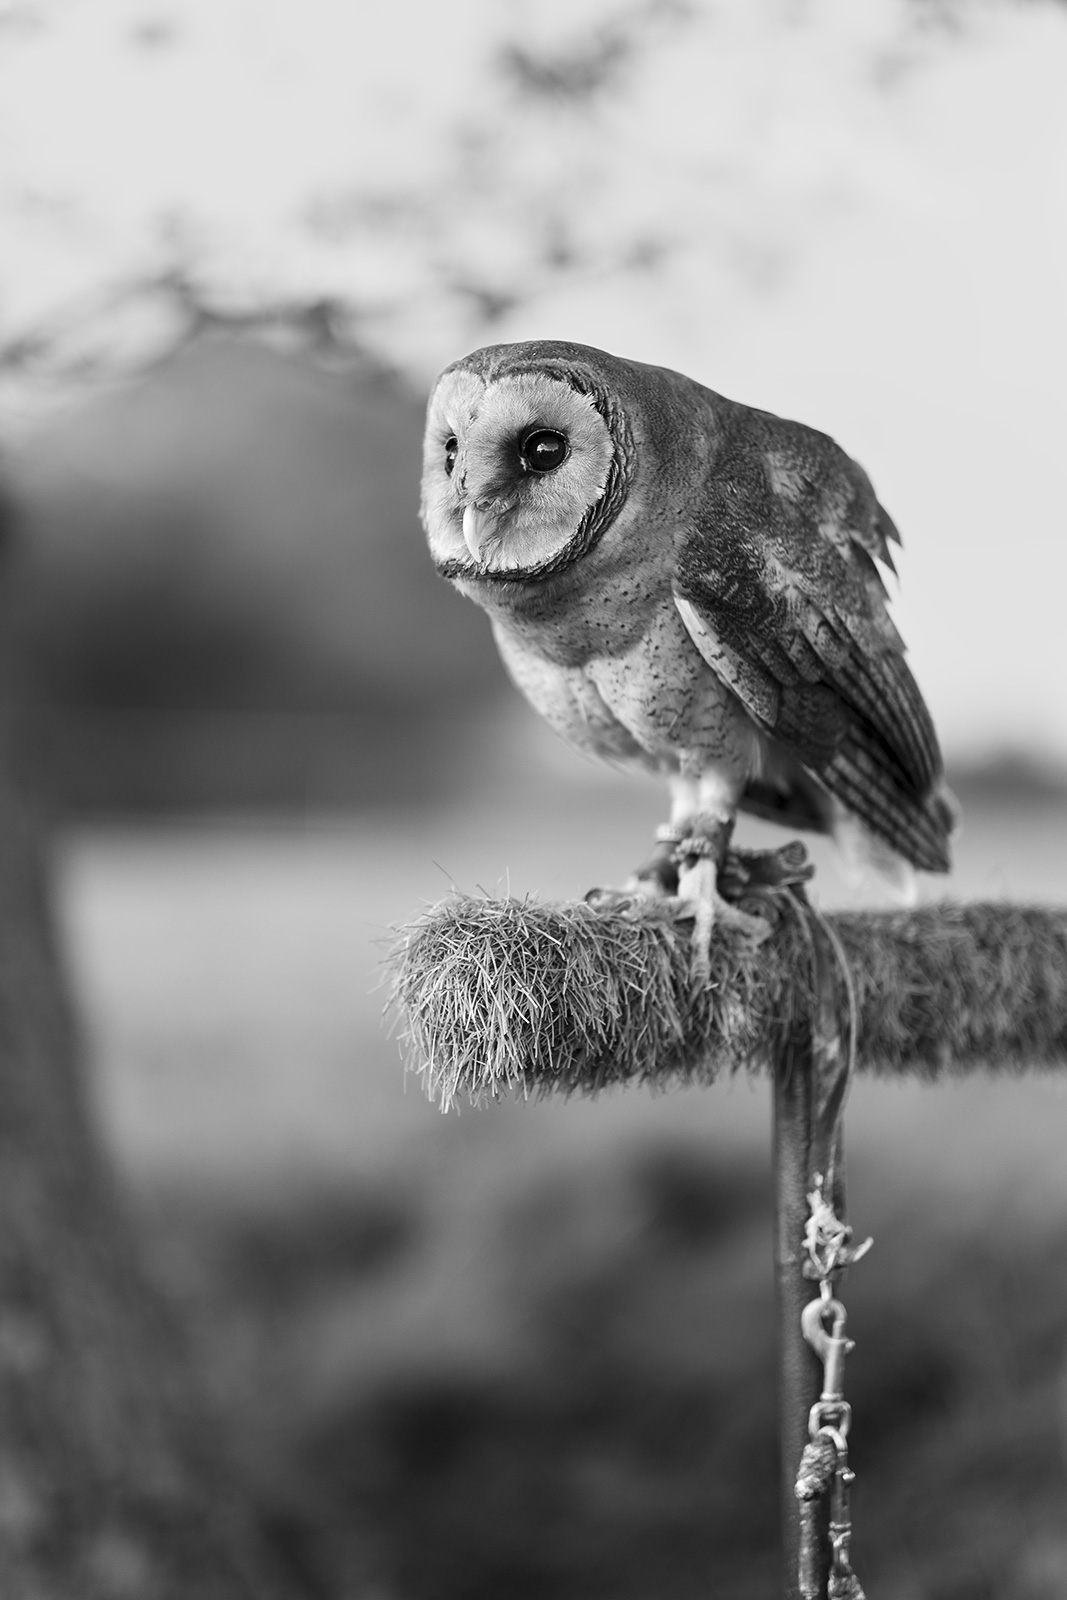 Ashy faced owl on stand with tether portrait, black and white portrait composition Poynings West Sussex ©P. Maton 2019 eyeteeth.net